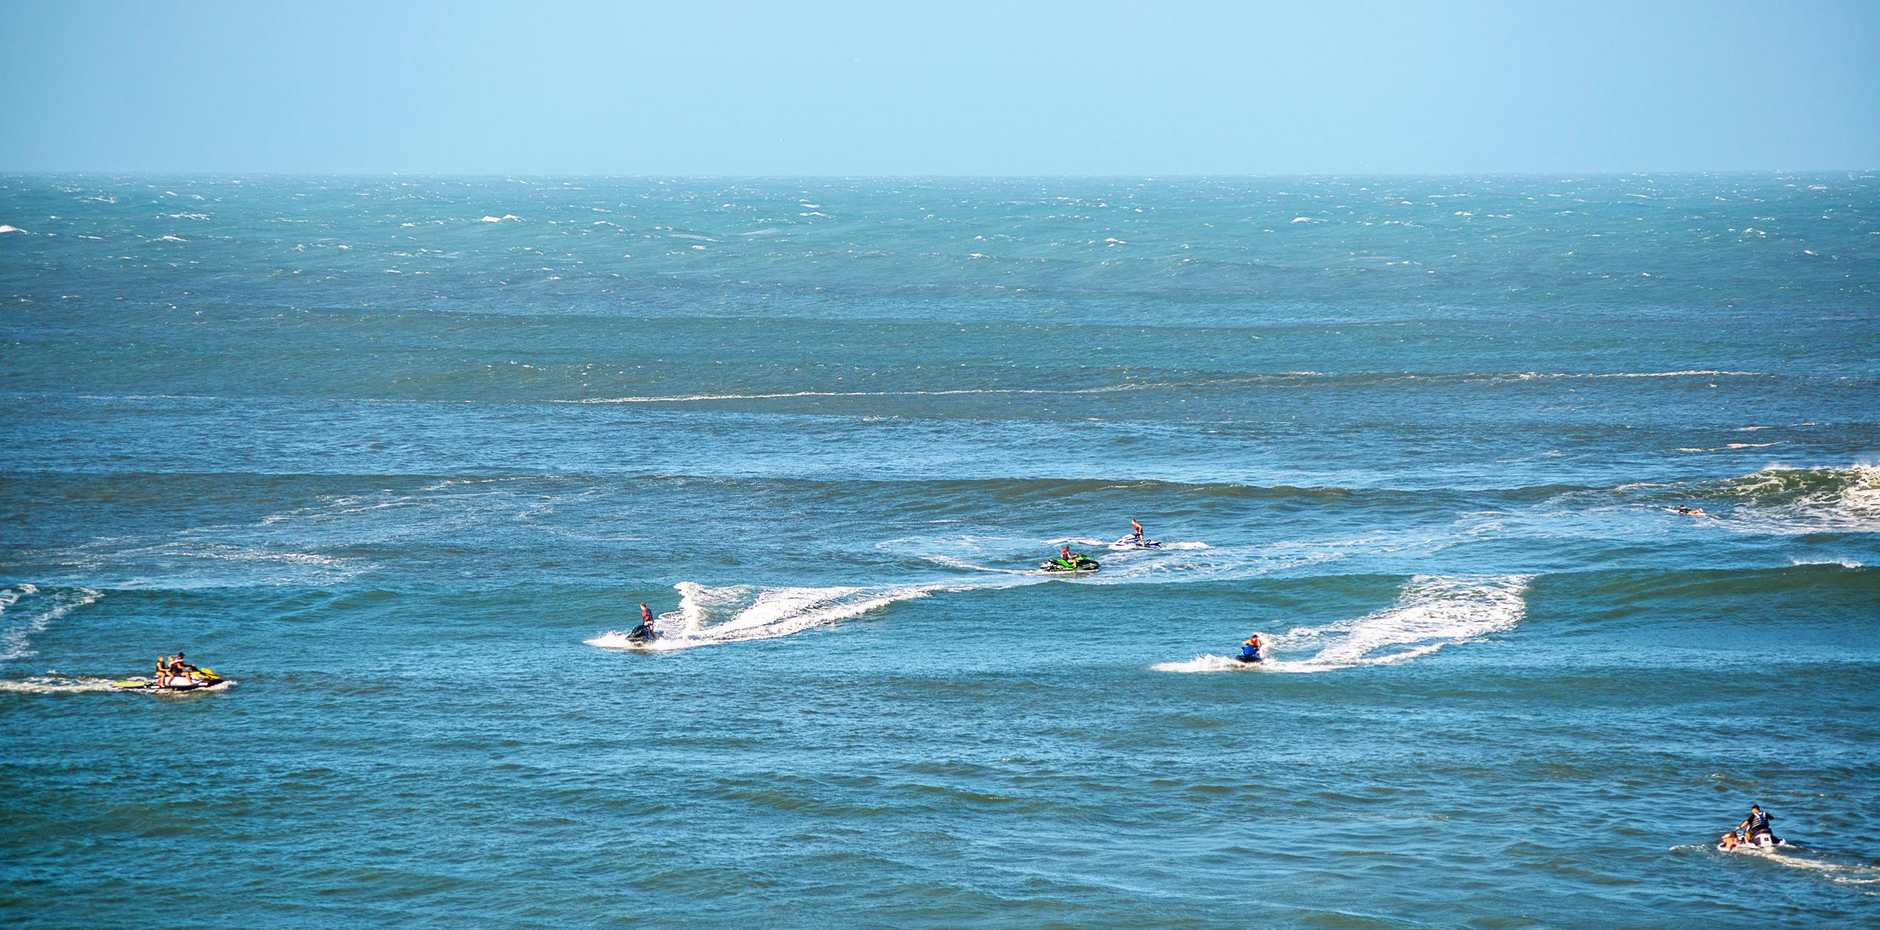 Is this what surfing Noosa's World Surfing Reserve should be about? Surfers paddling against a rip and the complete imbalance of a jet ski-dominated line up.